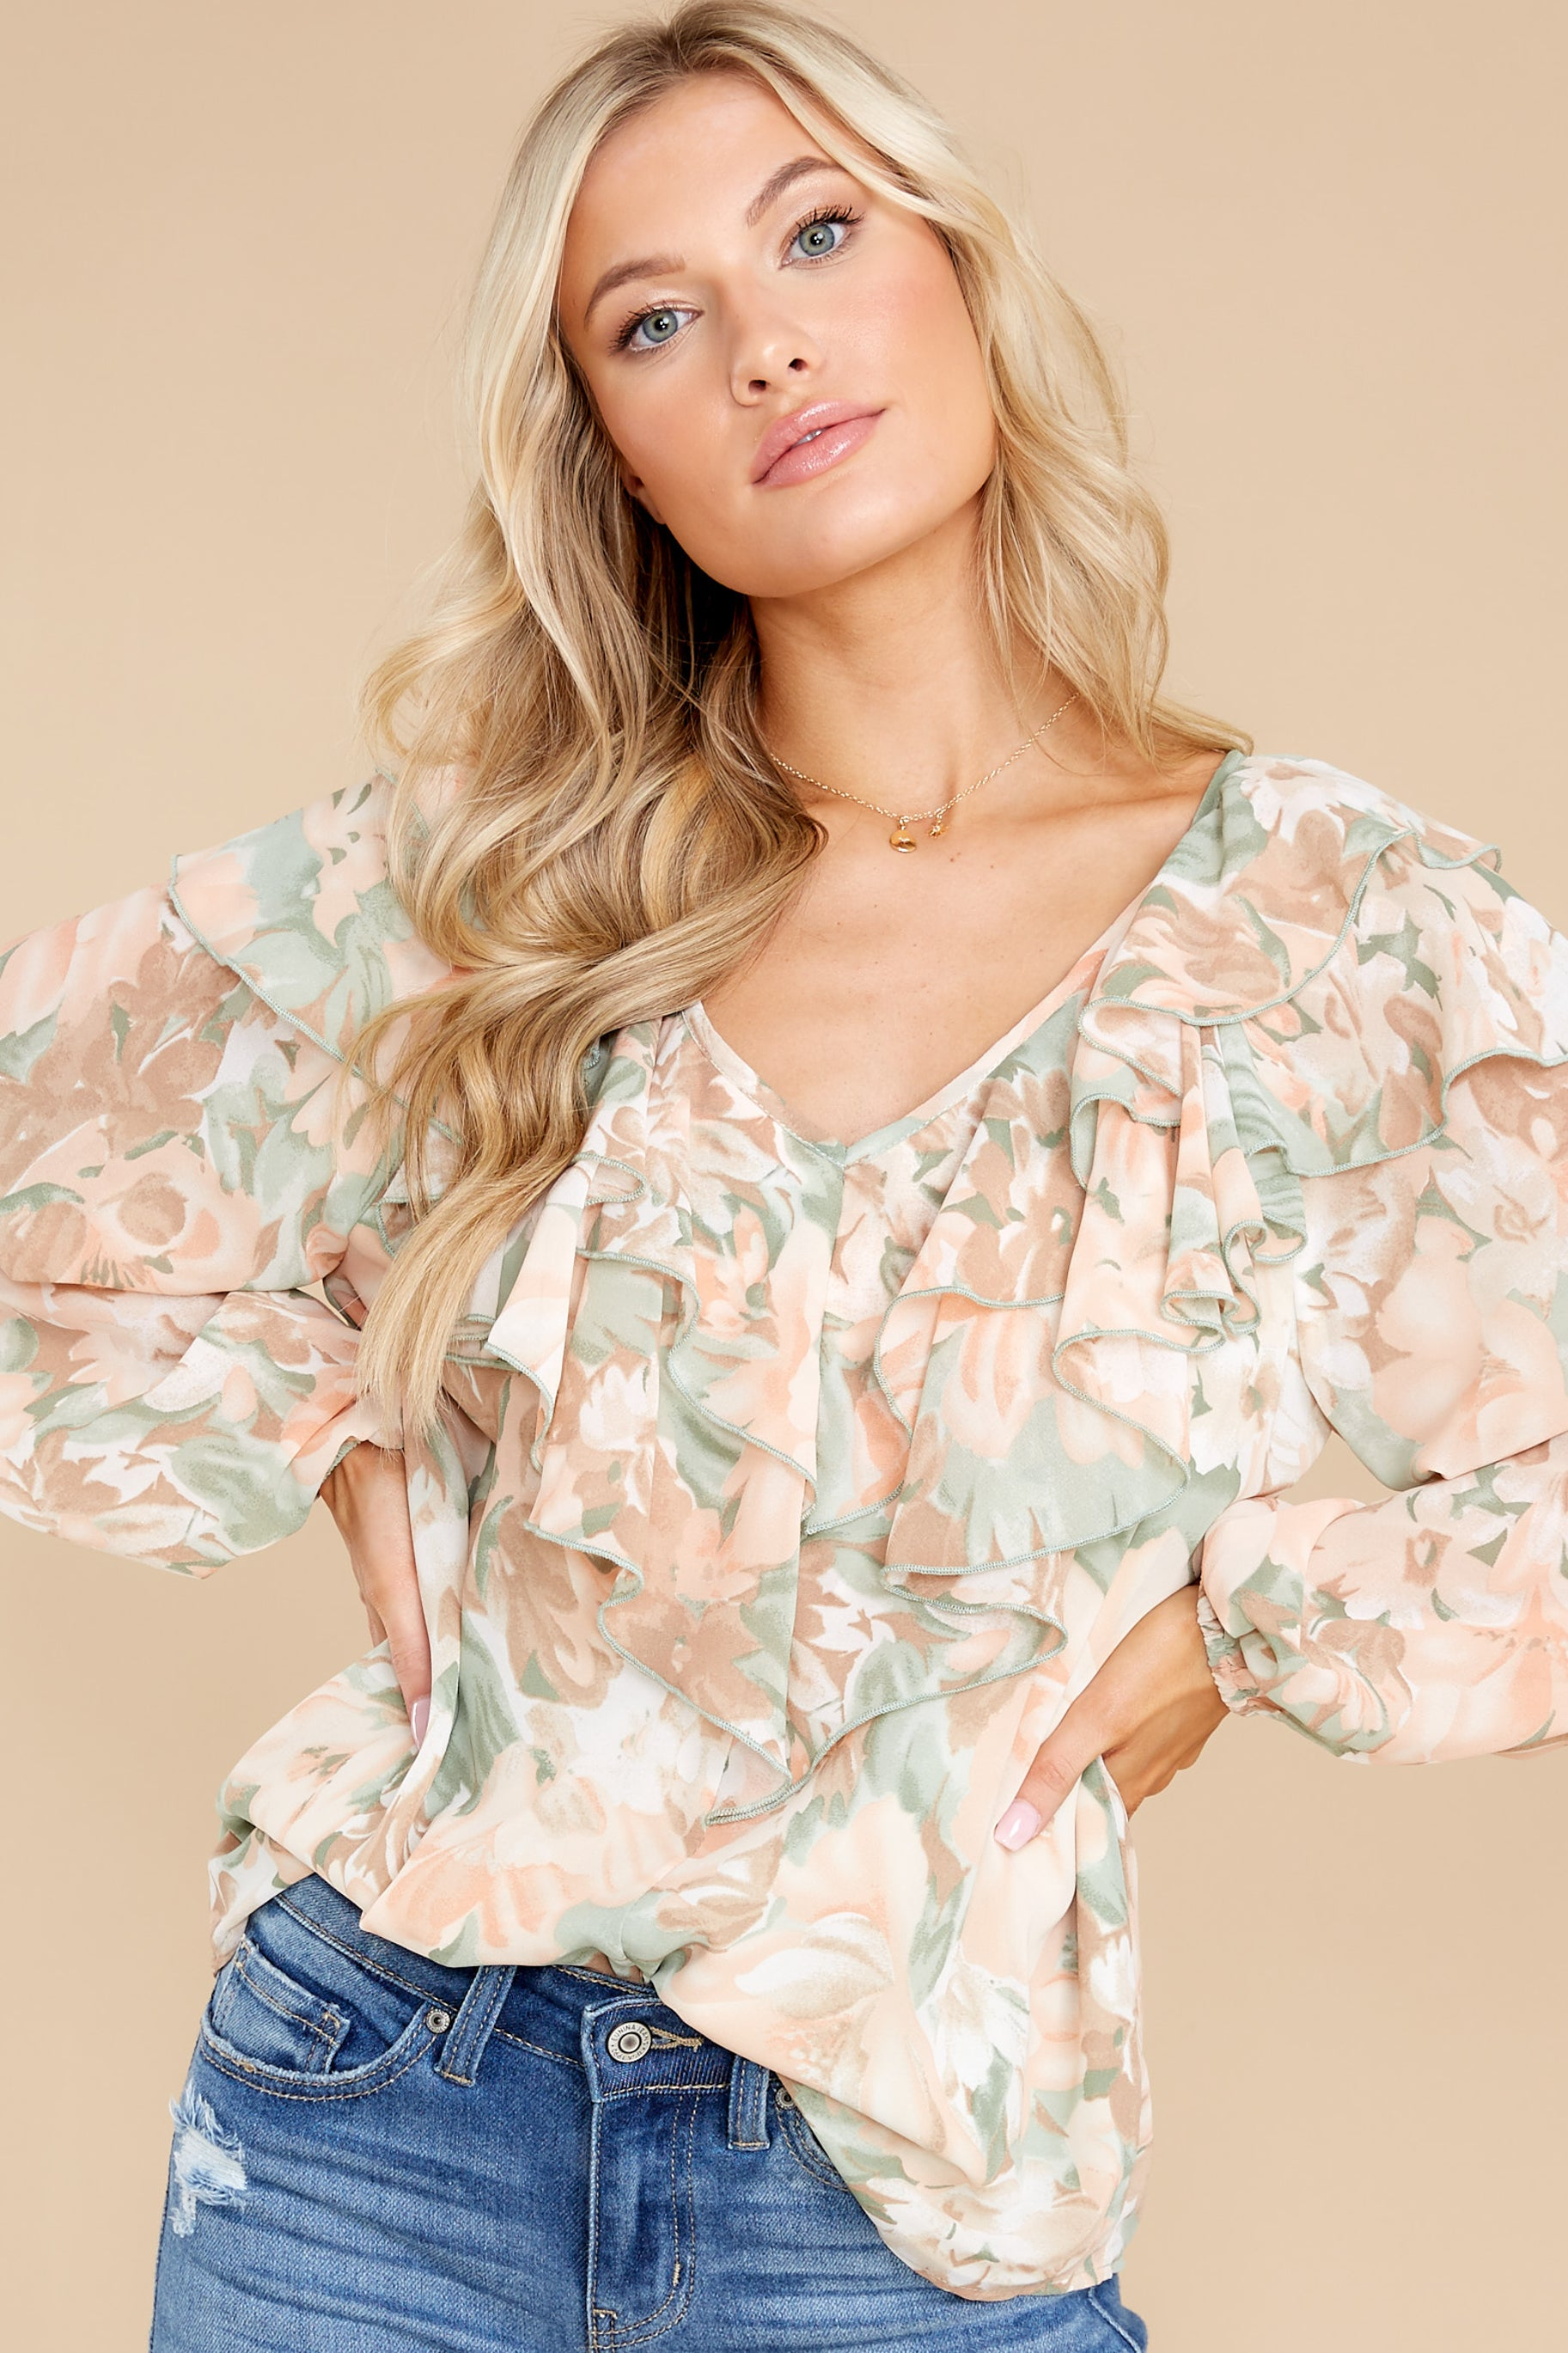 6 Wisteria Meadows Apricot And Sage Floral Print Top at reddress.com